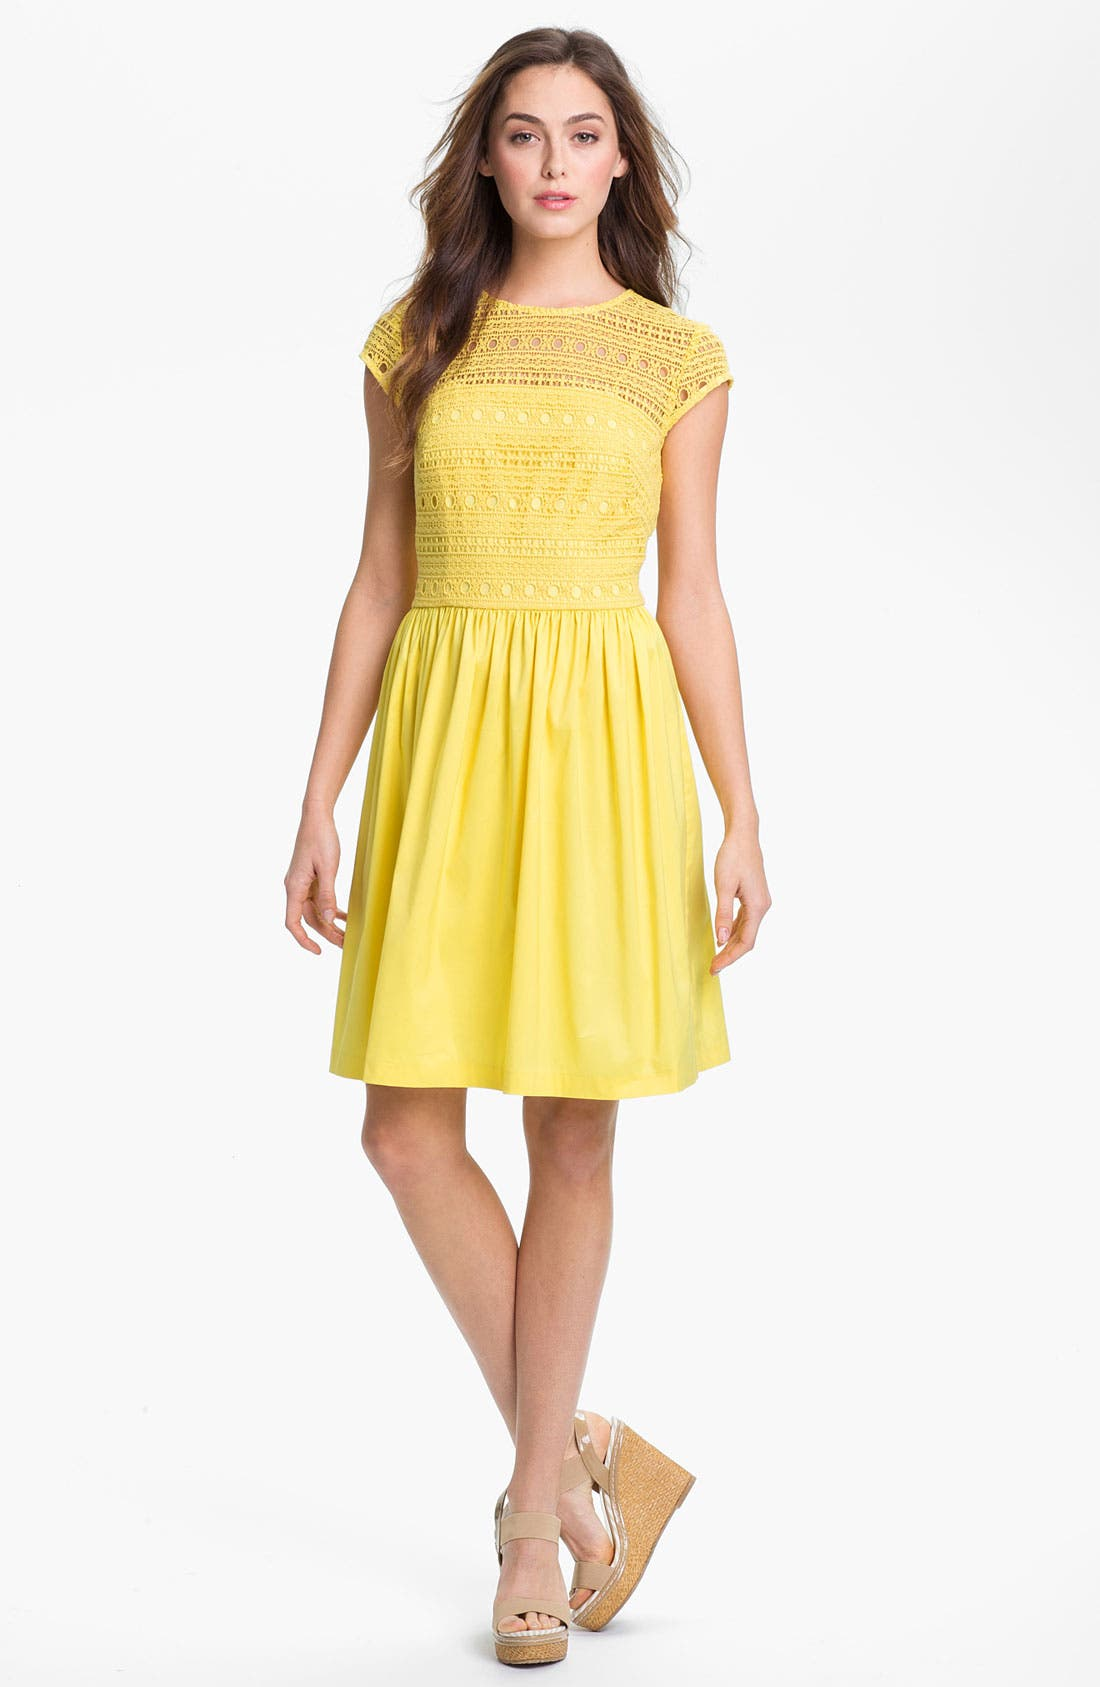 Main Image - Suzi Chin for Maggy Boutique Crochet Fit & Flare Dress